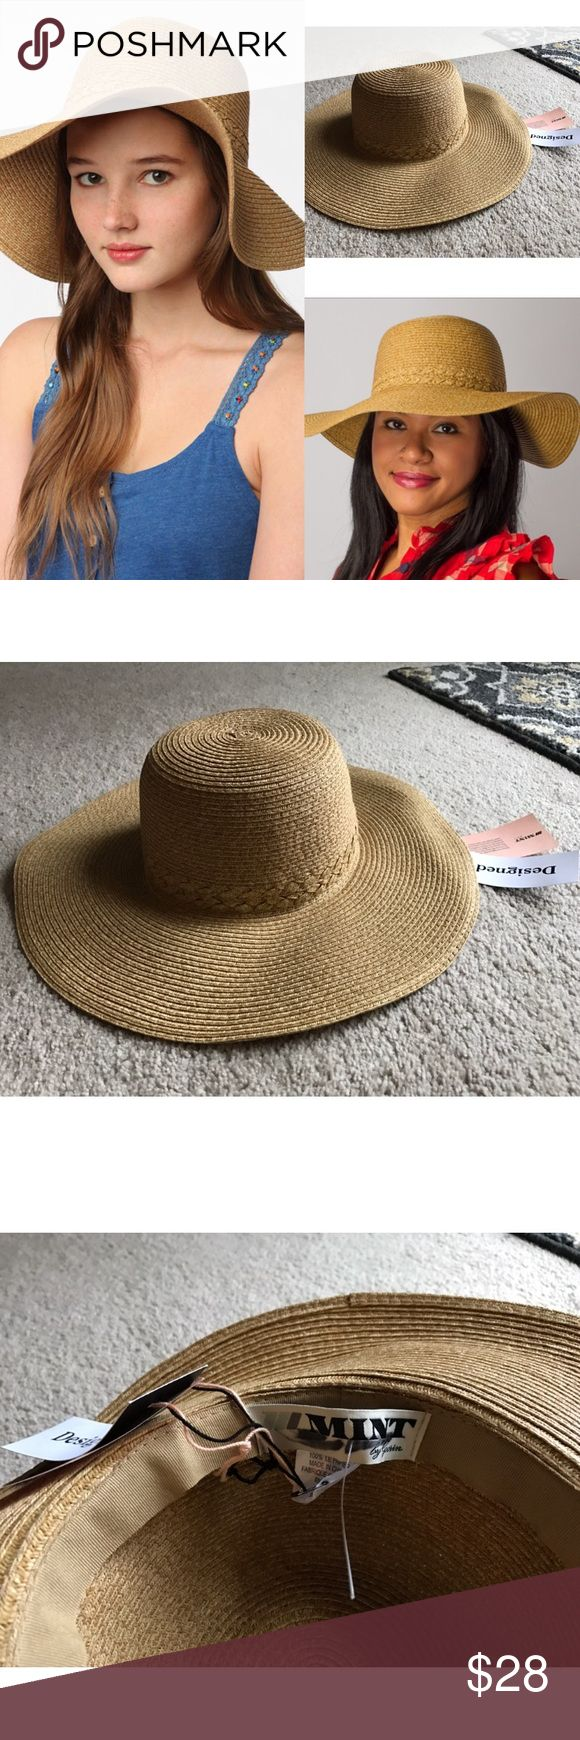 NWT mint straw floppy hat braided band beach uo NWT mint by gorin brothers from urban outfitters straw floppy hat with braided band 🚫NO TRADES Urban Outfitters Accessories Hats